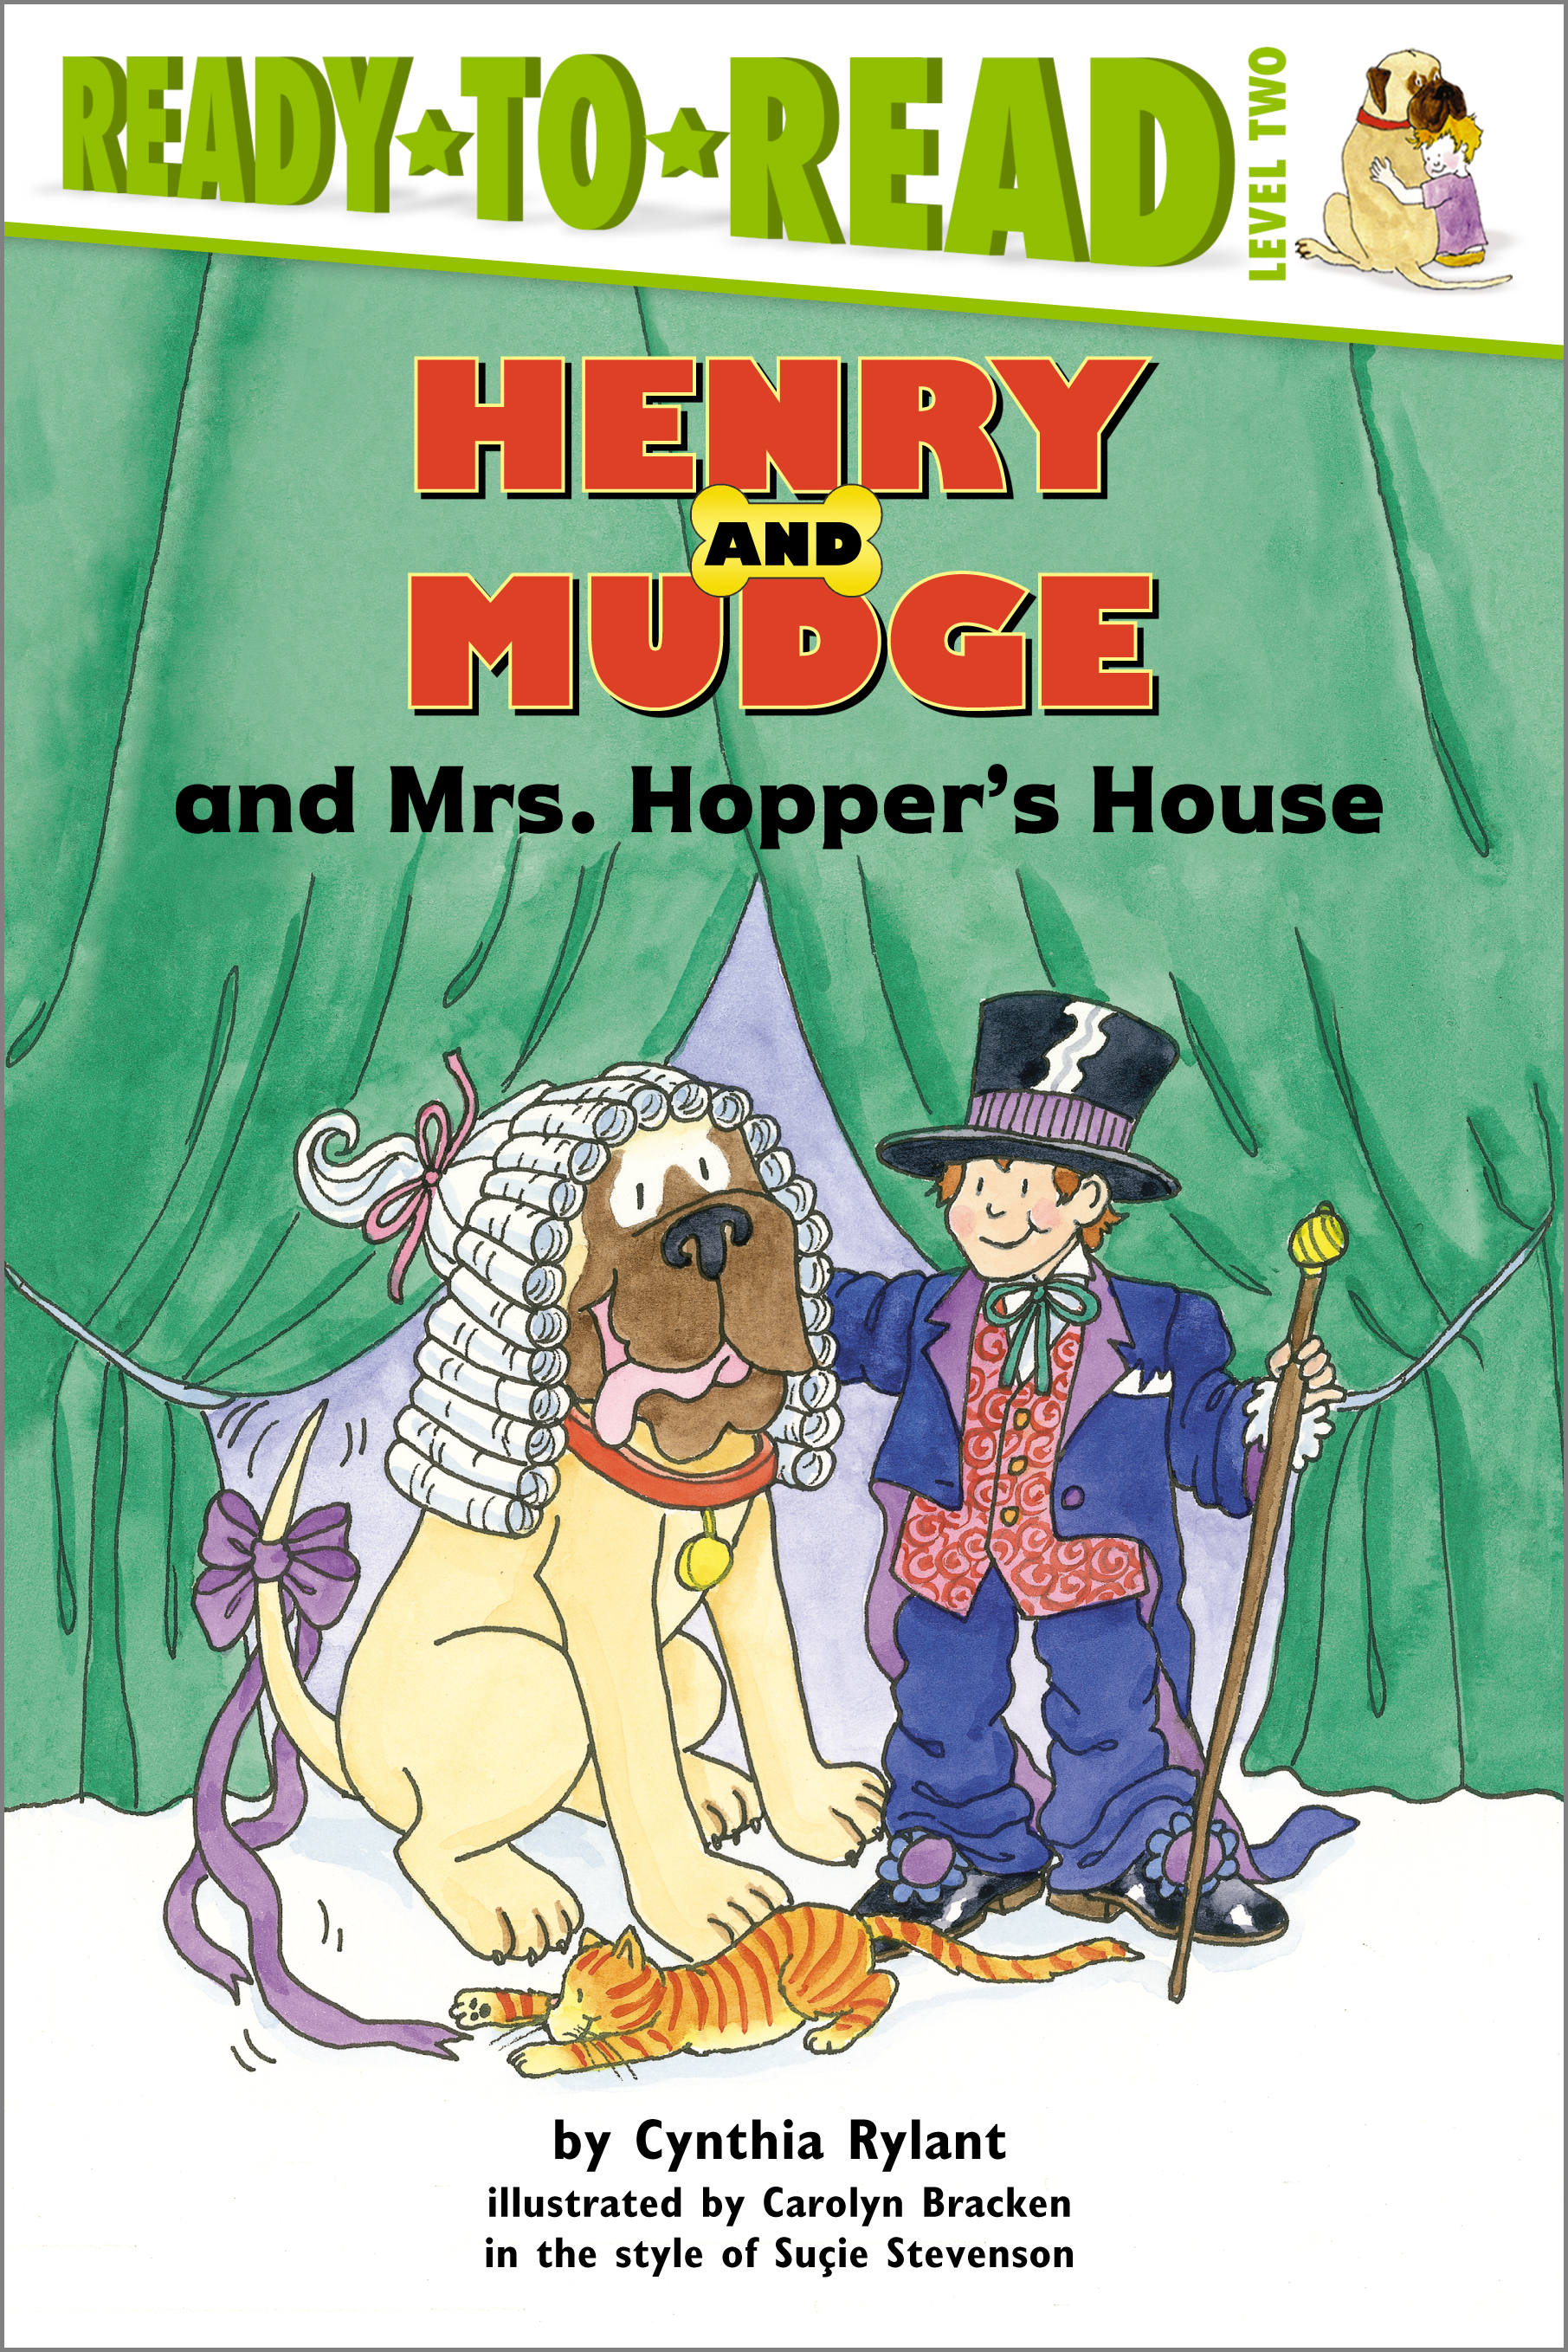 henry and mudge and mrs. hopper's house | book by cynthia rylant